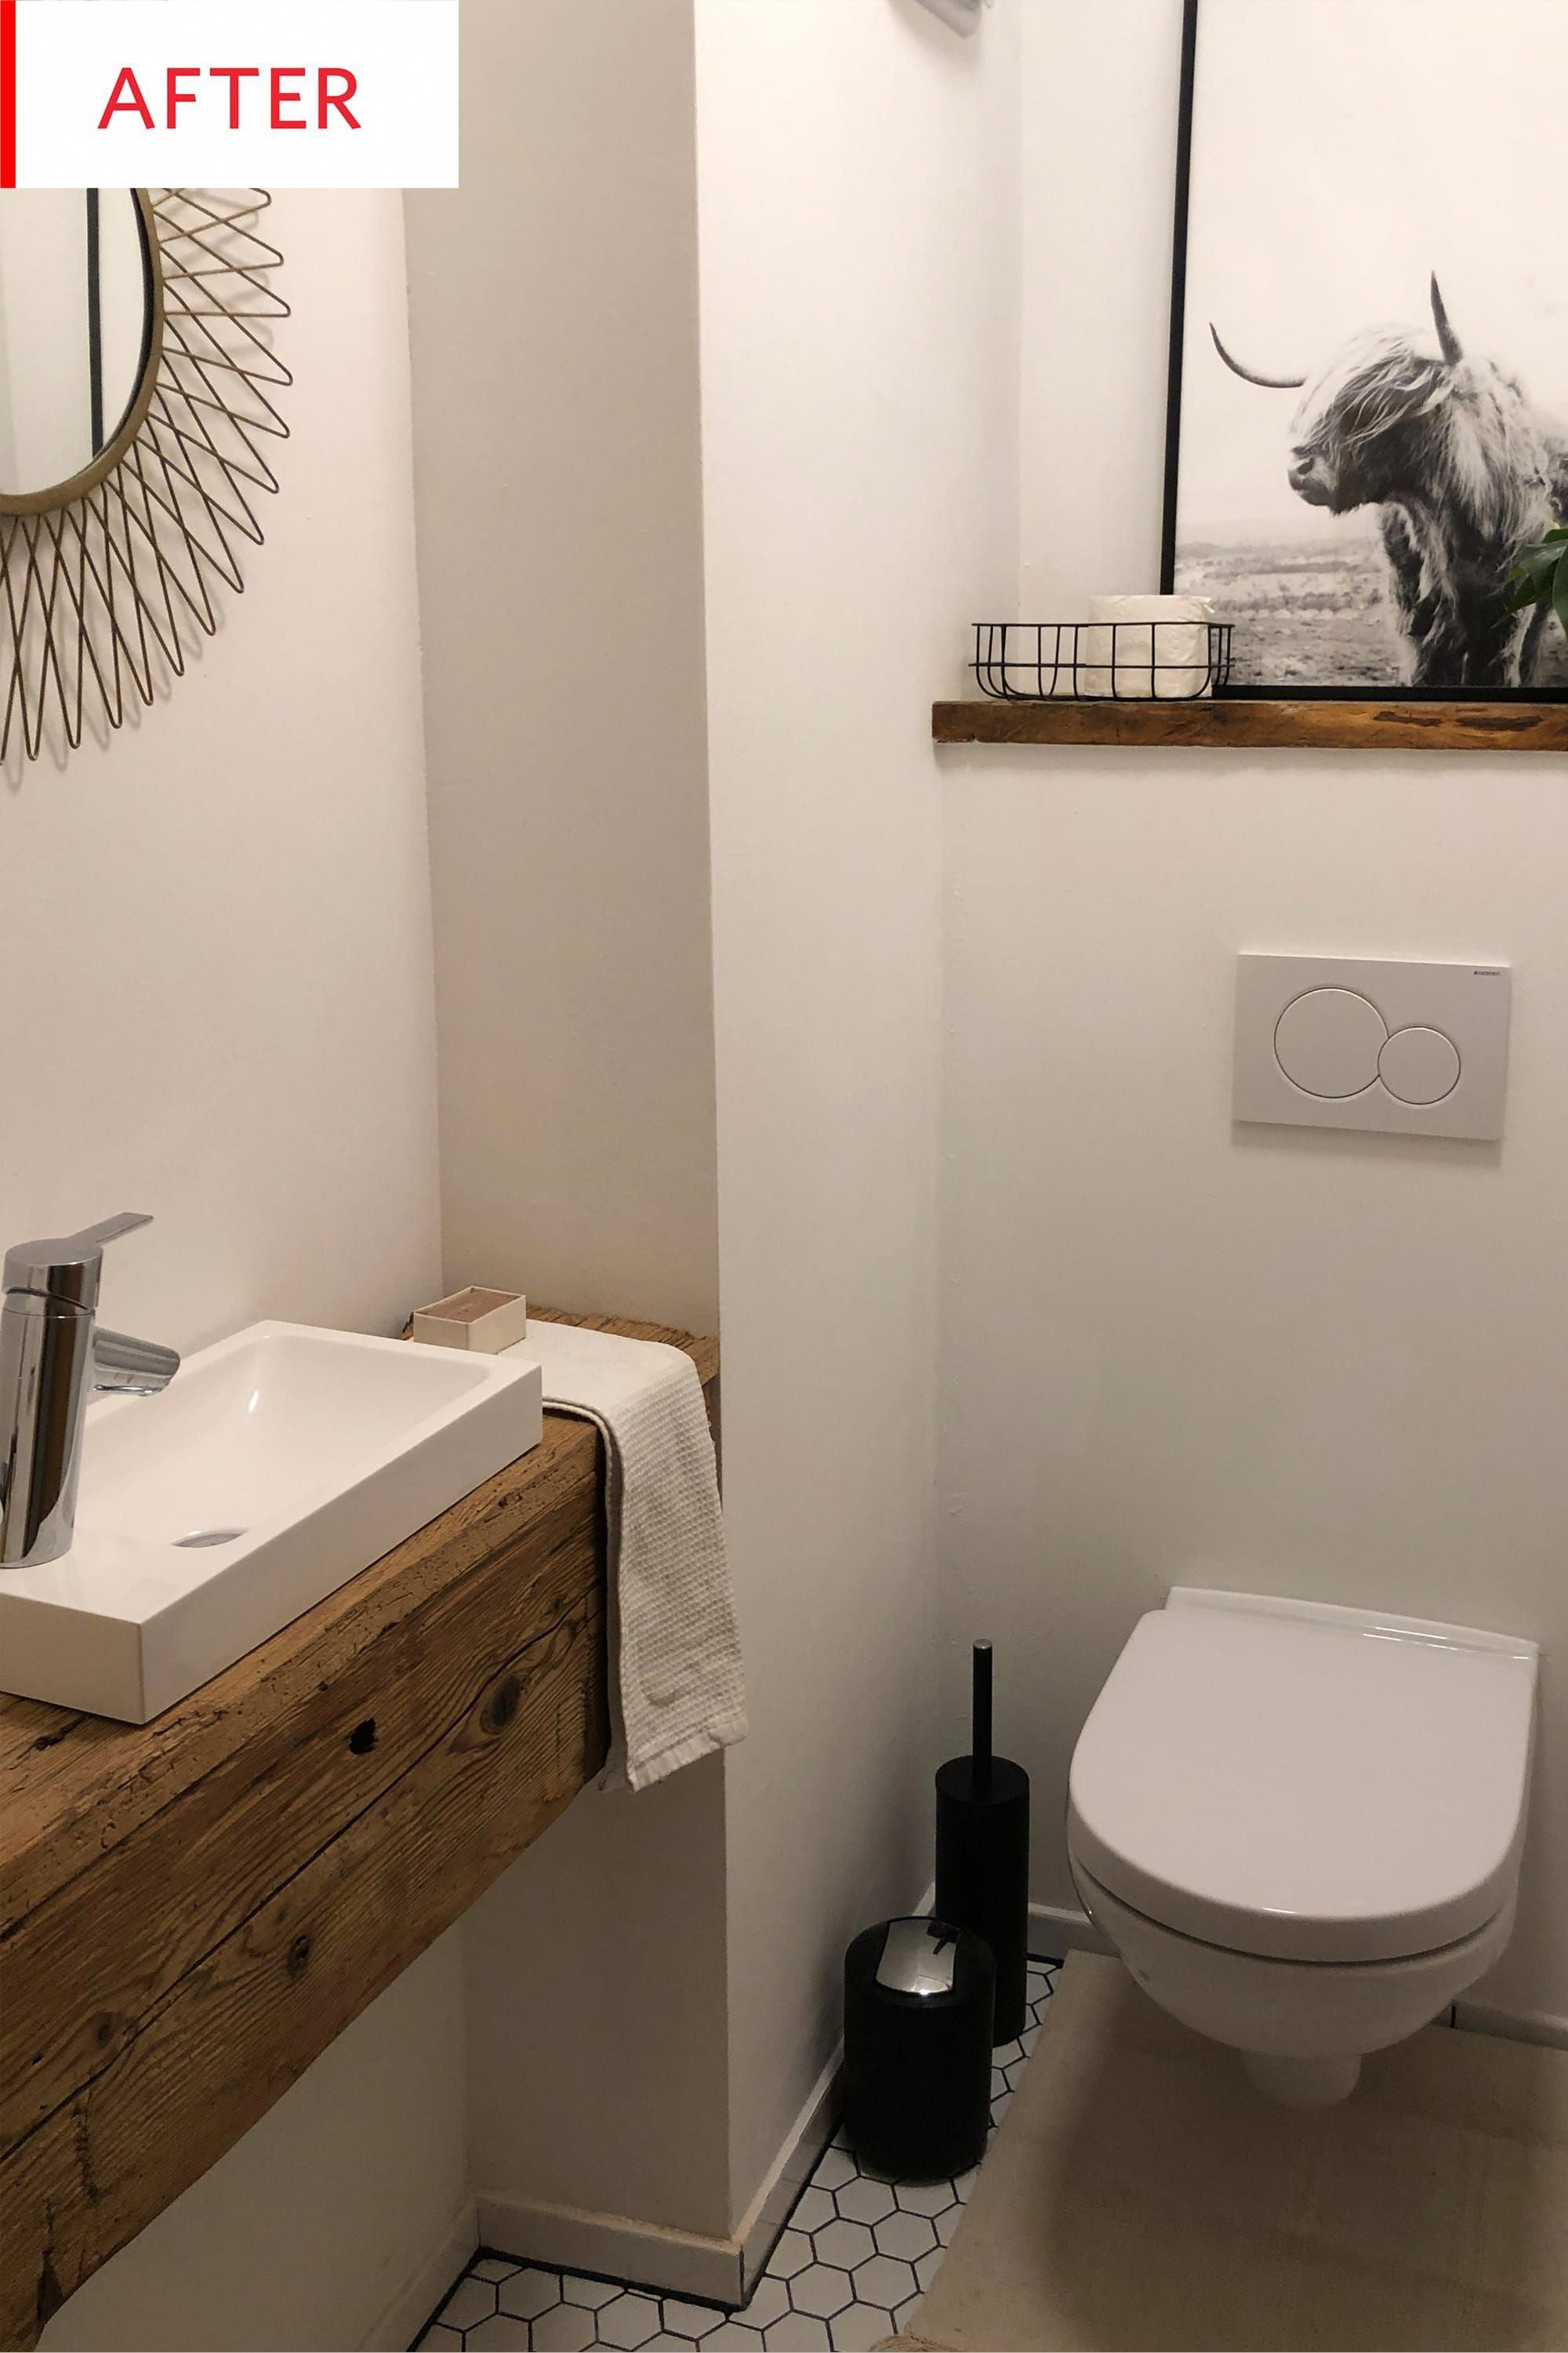 Check out here Bathroom Styling Ideas With images